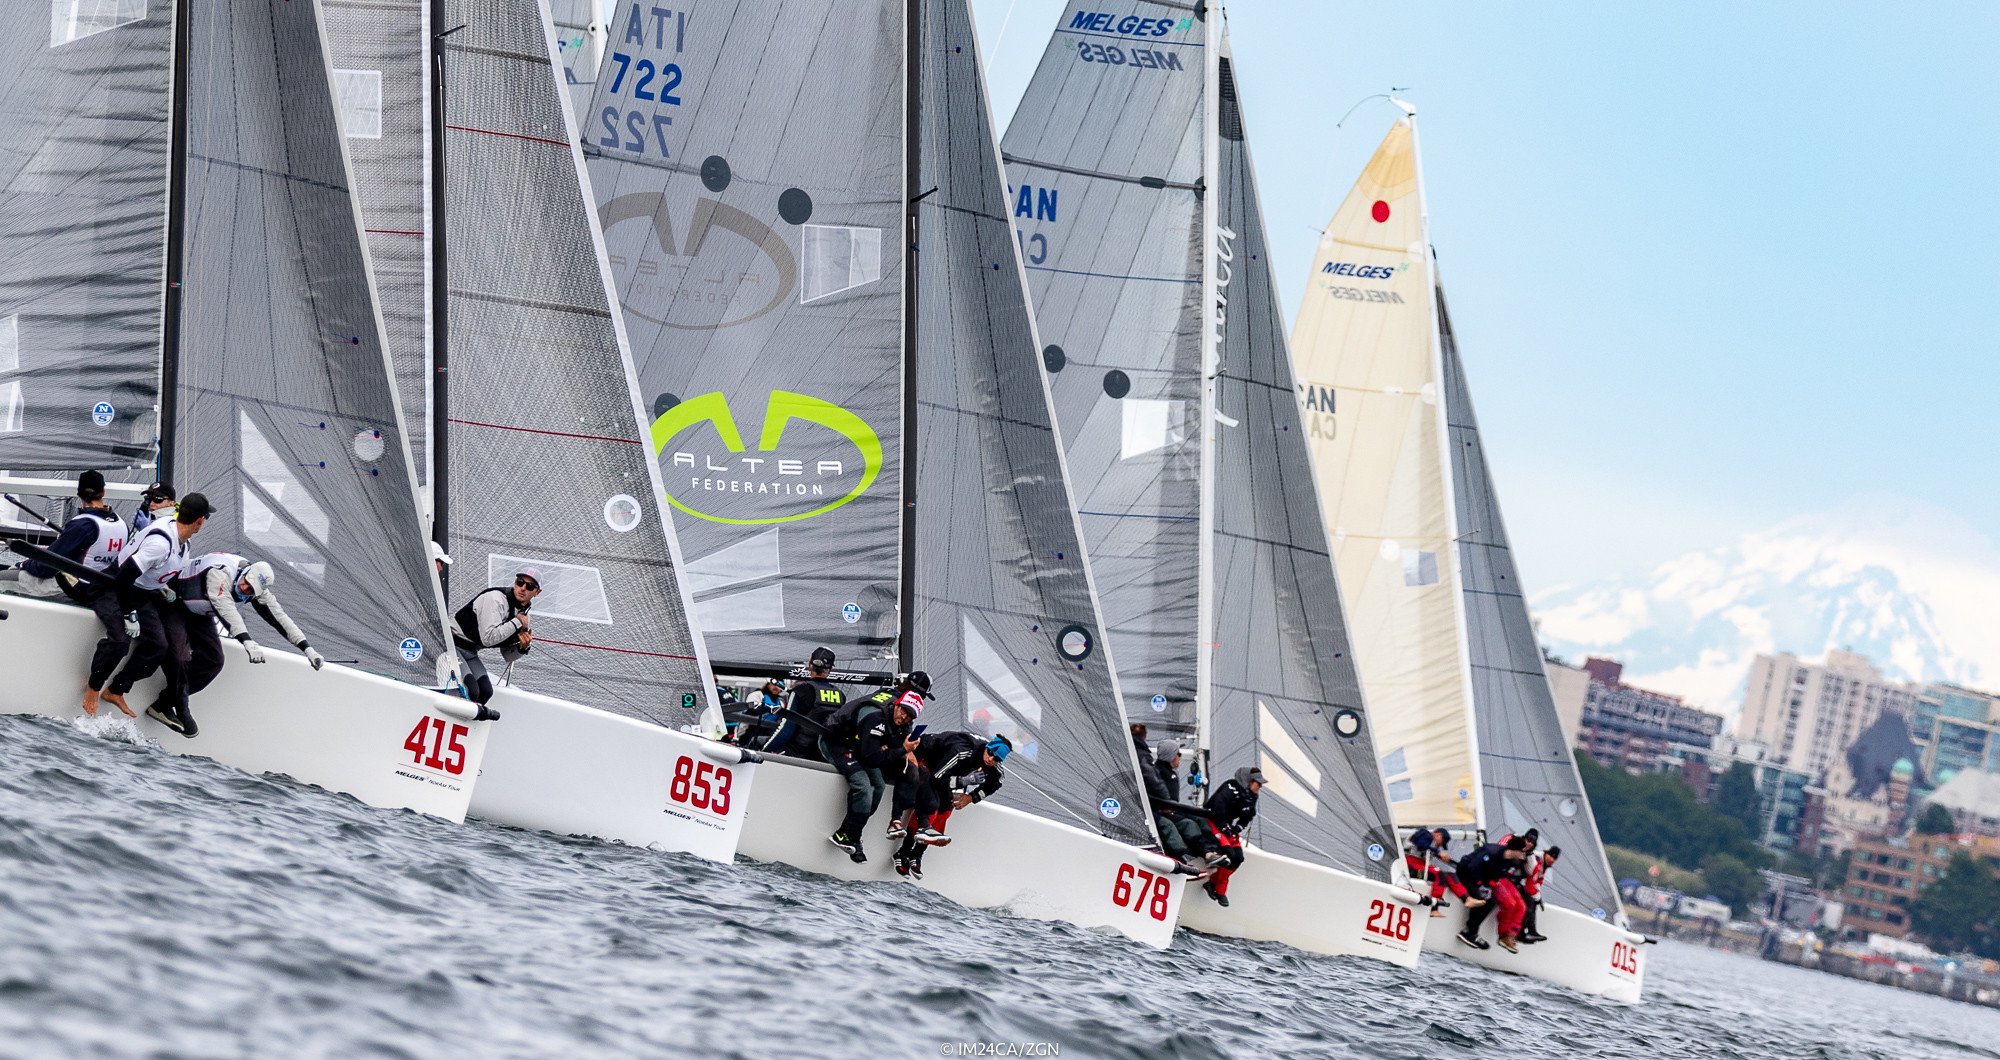 The starting line of the 2020 Melges 24 Worlds in Charleston is getting closer. - Photo © IM24CA / Zerogradinord